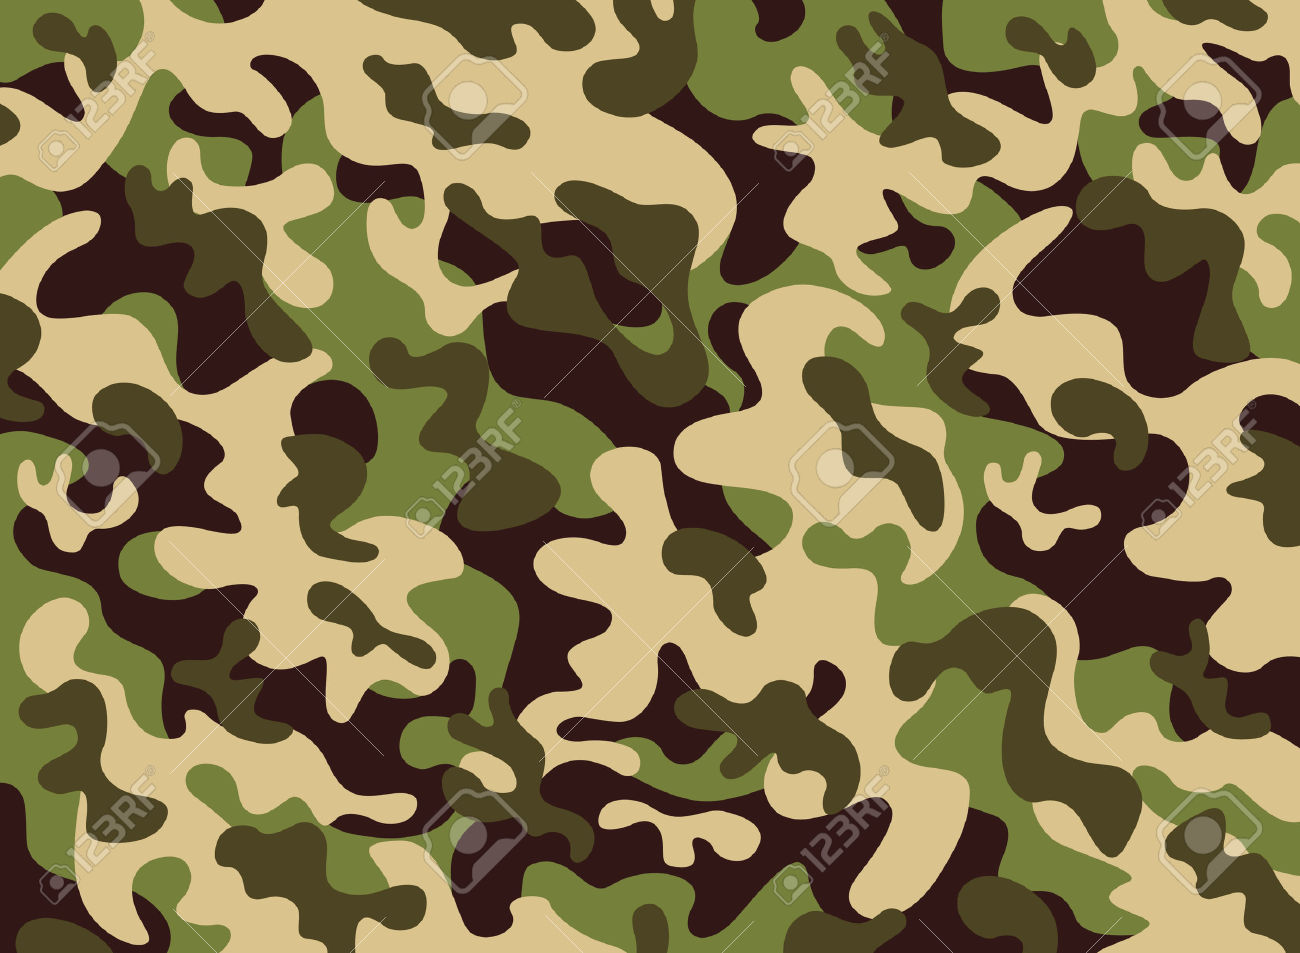 Camouflage Royalty Free Cliparts, Vectors, And Stock Illustration.